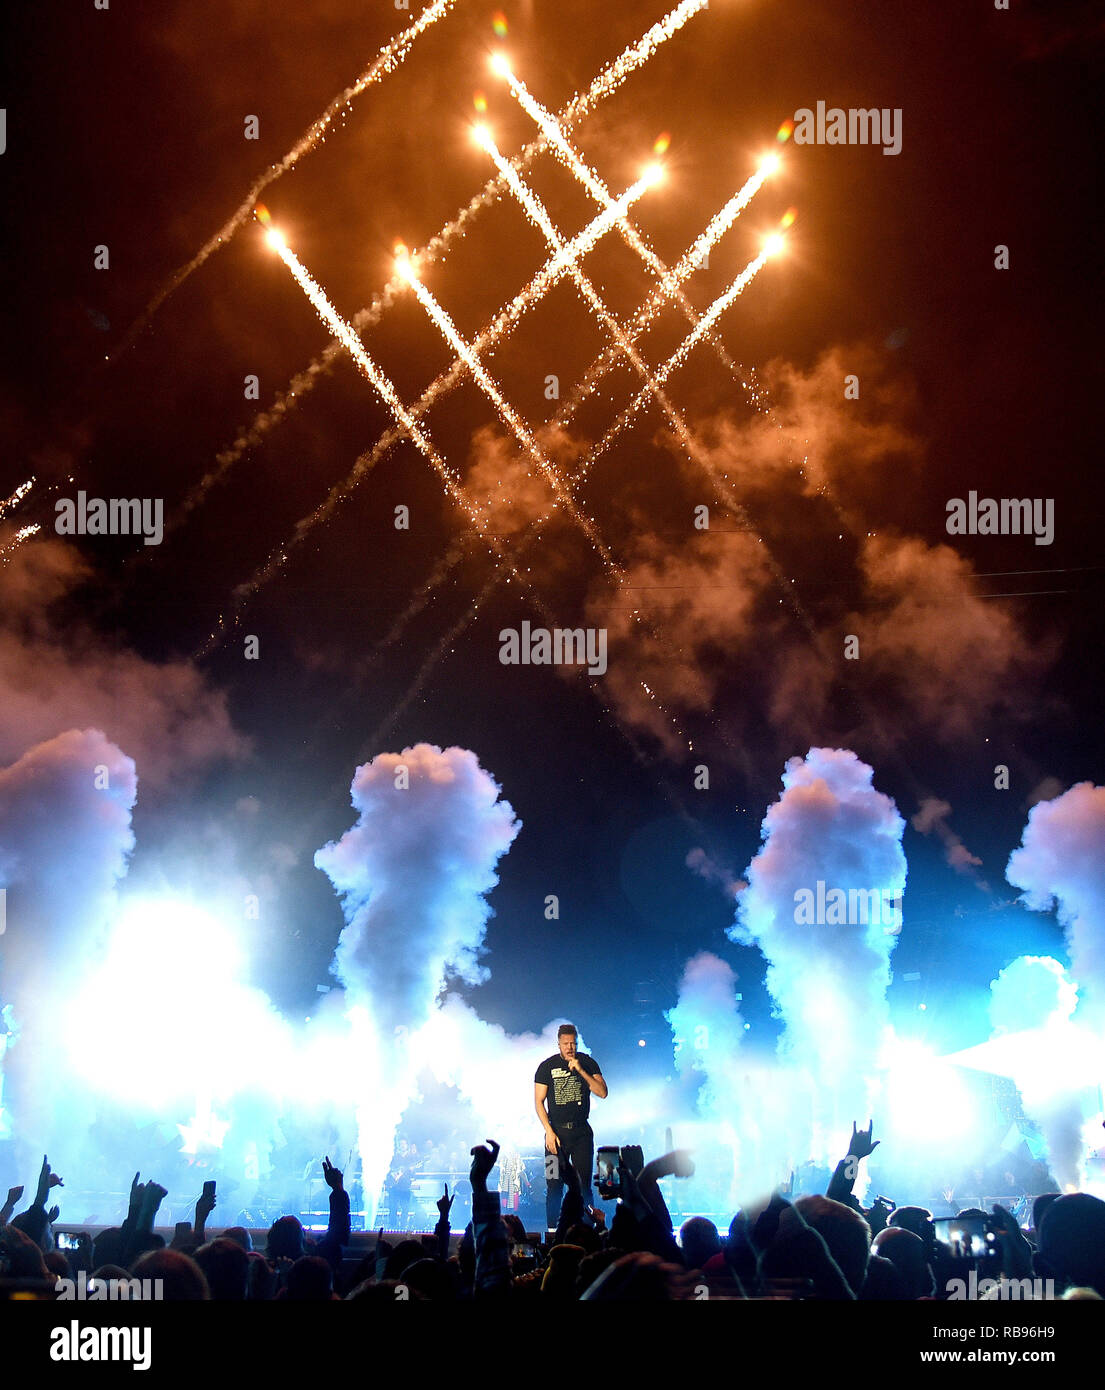 San Francisco, California, USA. 7th January, 2019. Dan Reynolds of Imagine Dragons performs during the 2019 College Football Playoff National Championship Game Halftime Show at Treasure Island on January 7, 2019 in San Francisco, California. Photo: imageSPACE/MediaPunch Credit: MediaPunch Inc/Alamy Live News - Stock Image